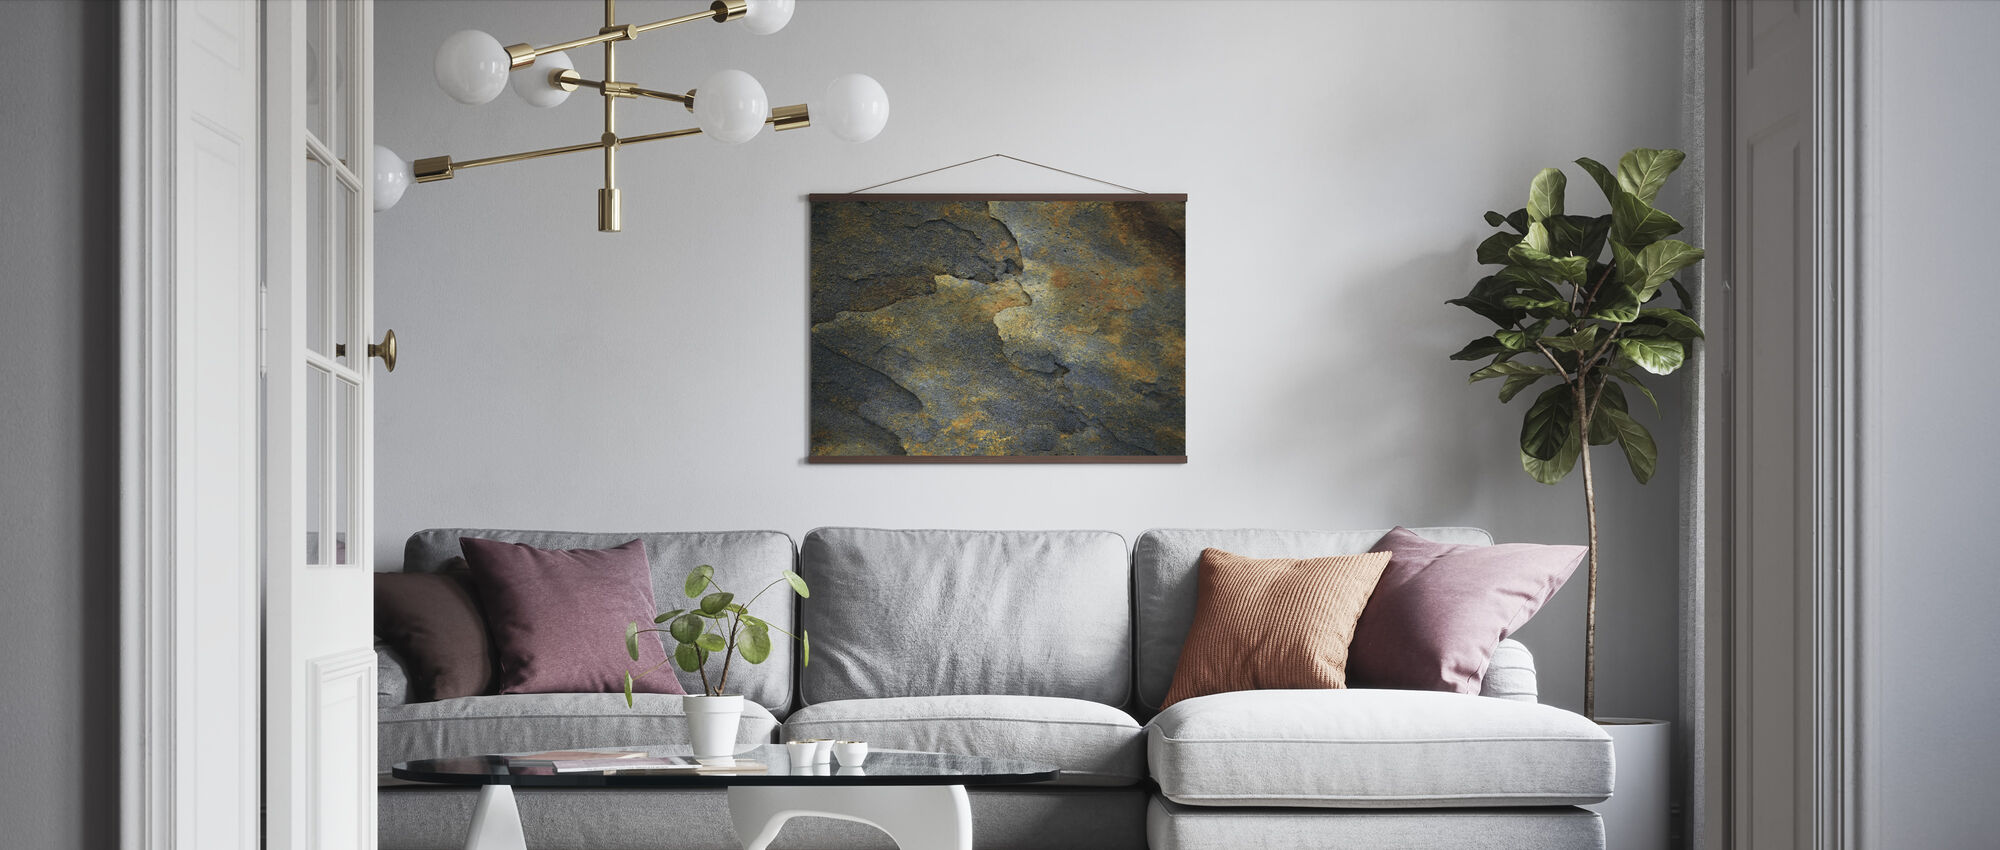 Mineral Rock - Poster - Living Room